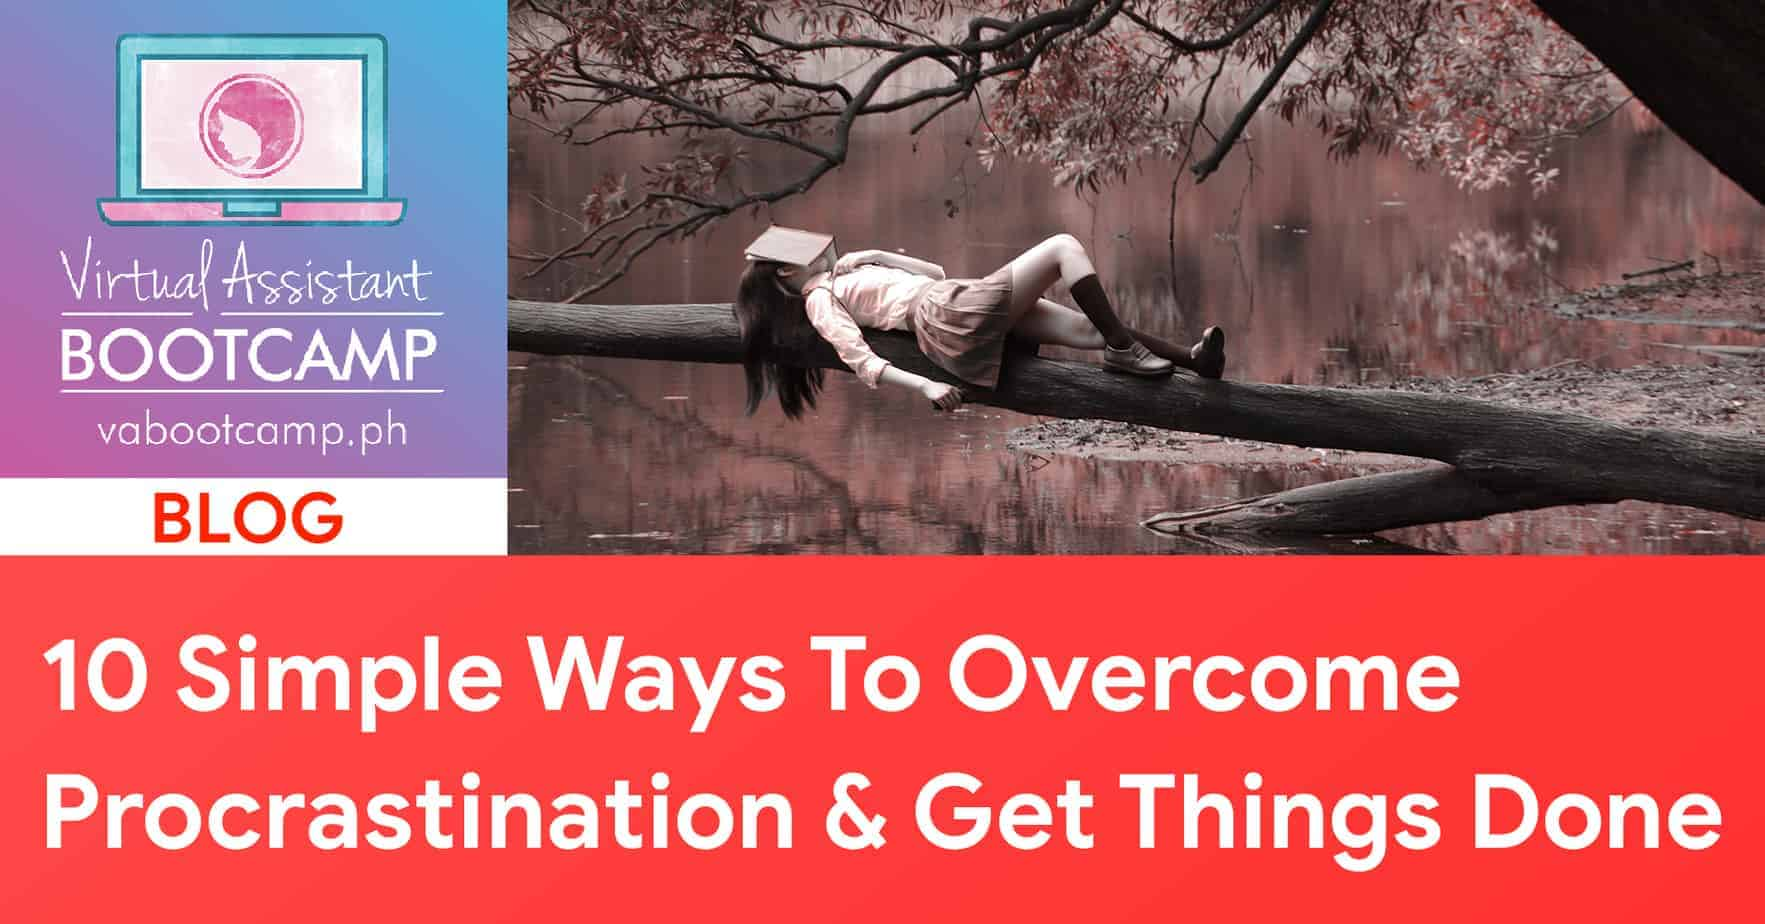 10 Simple Ways To Overcome Procrastination & Get Things Done